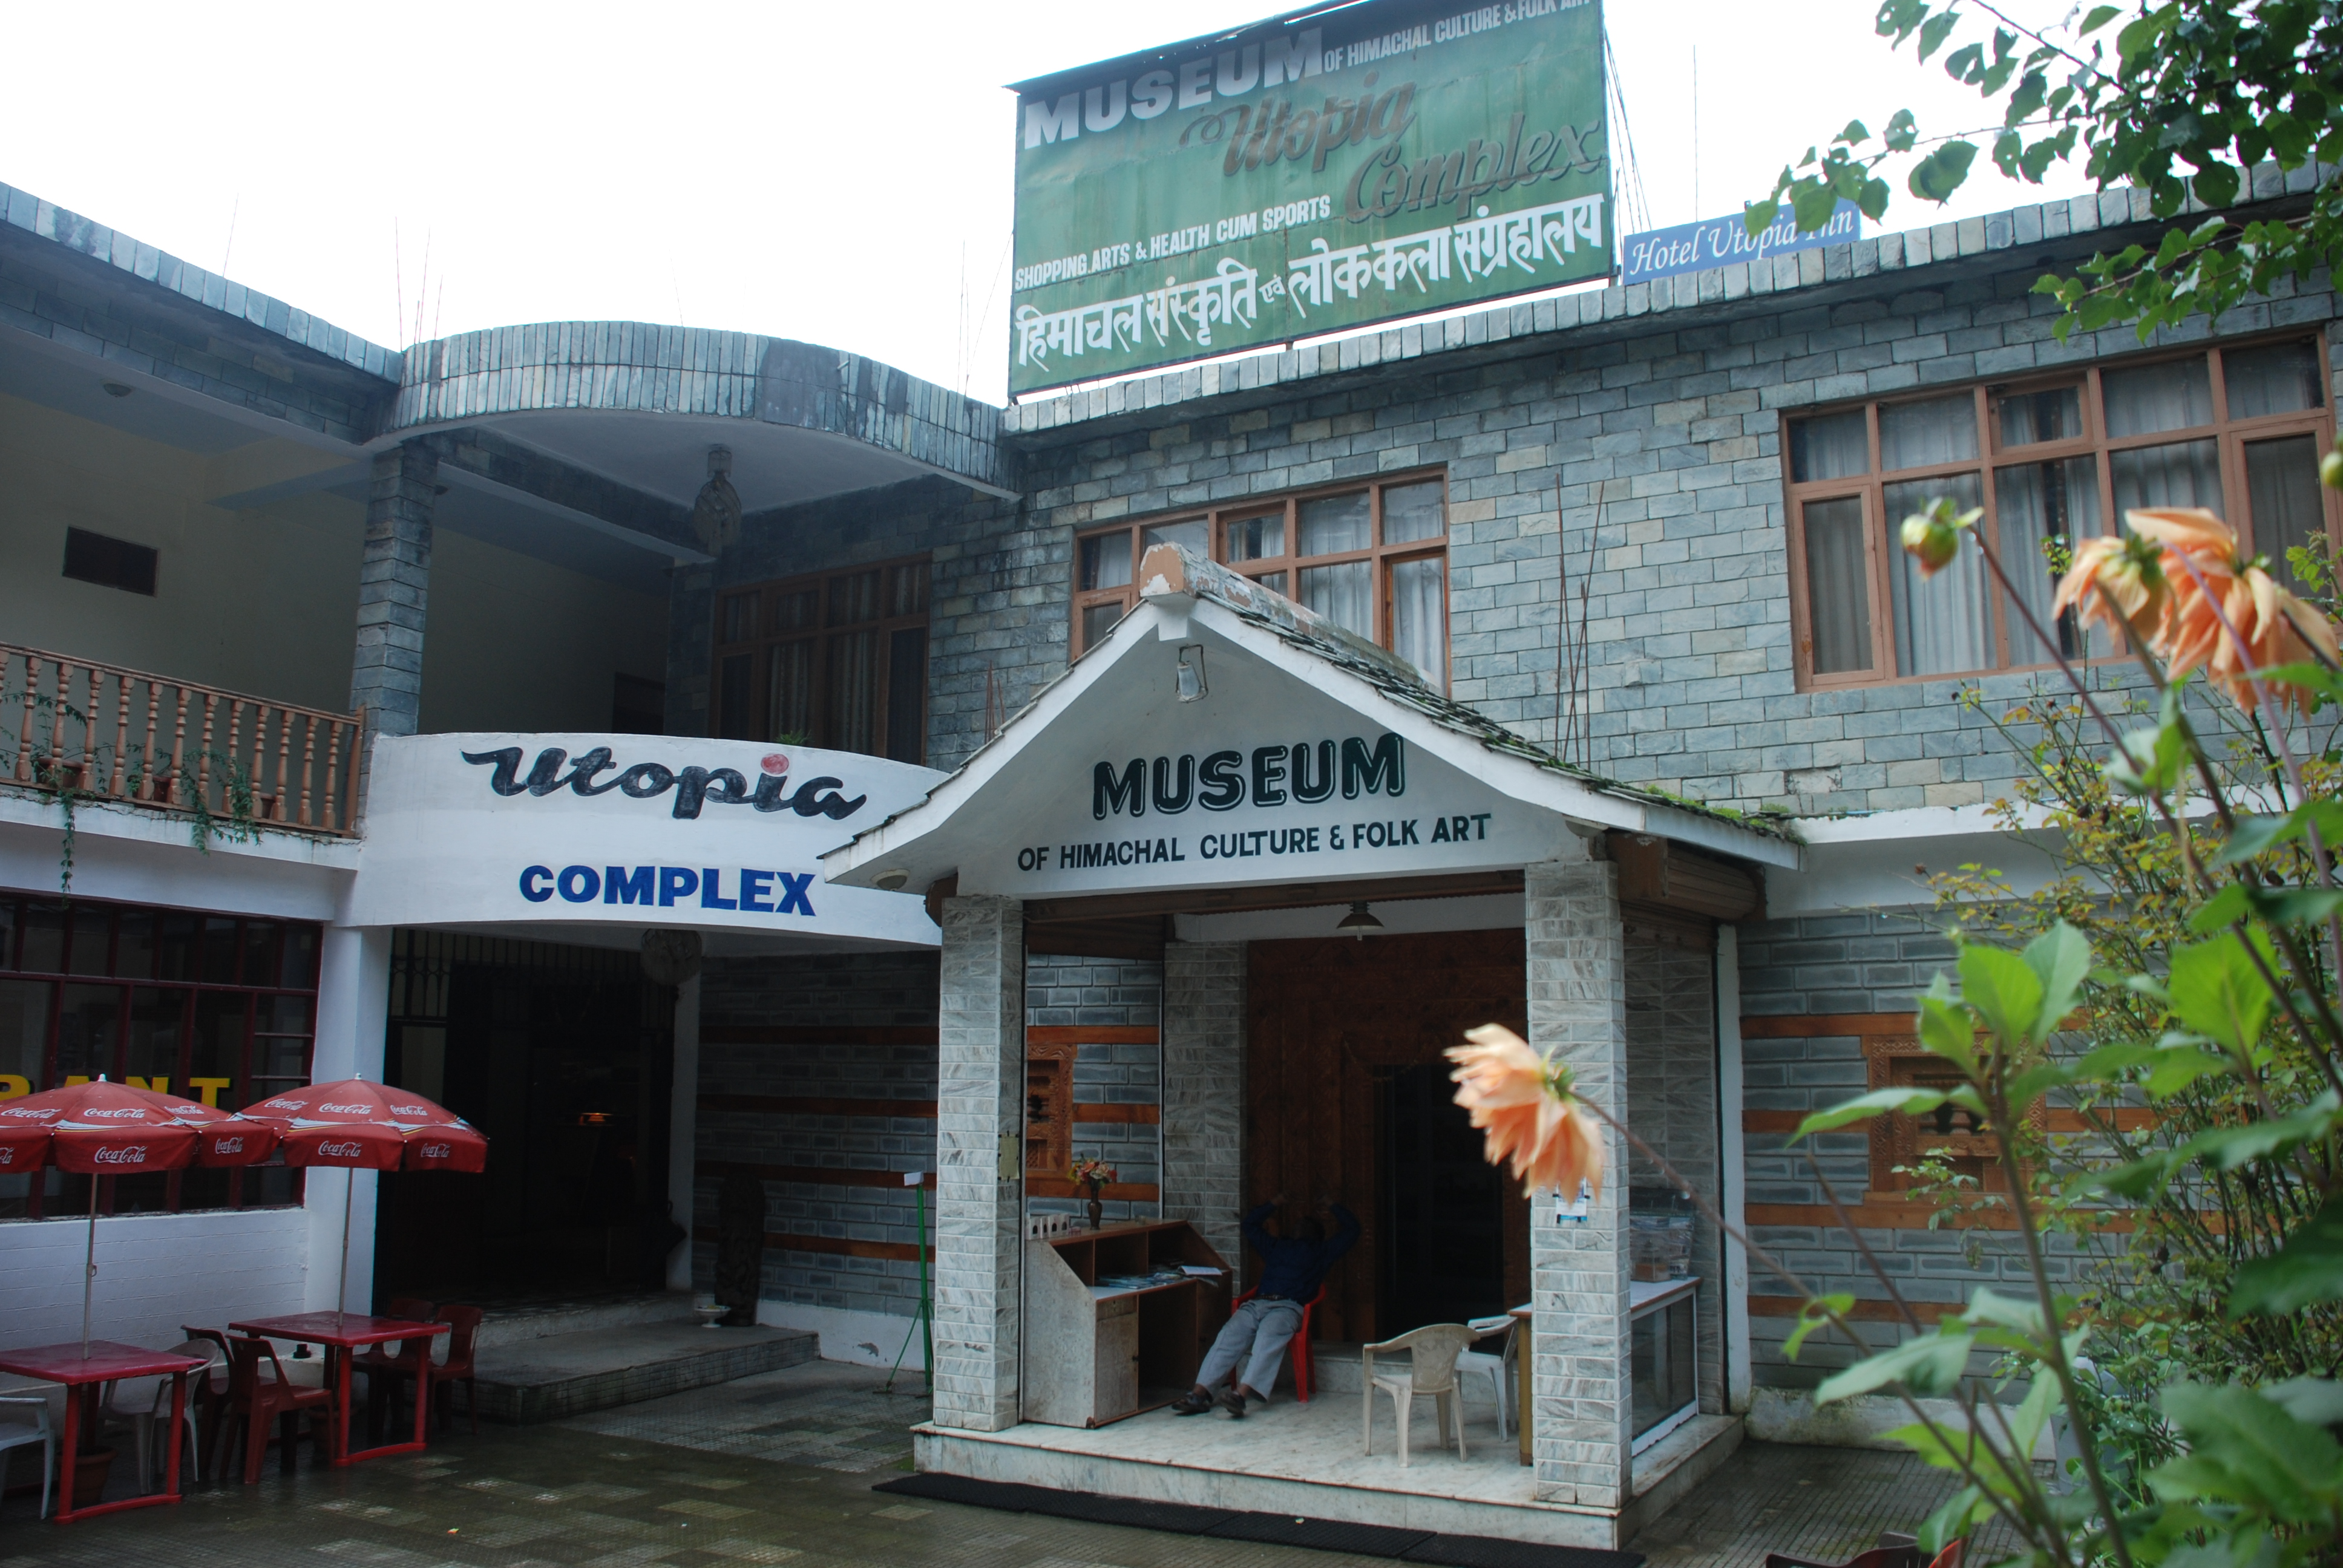 Museum of Himachal Culture and Folk Art - Manali Image